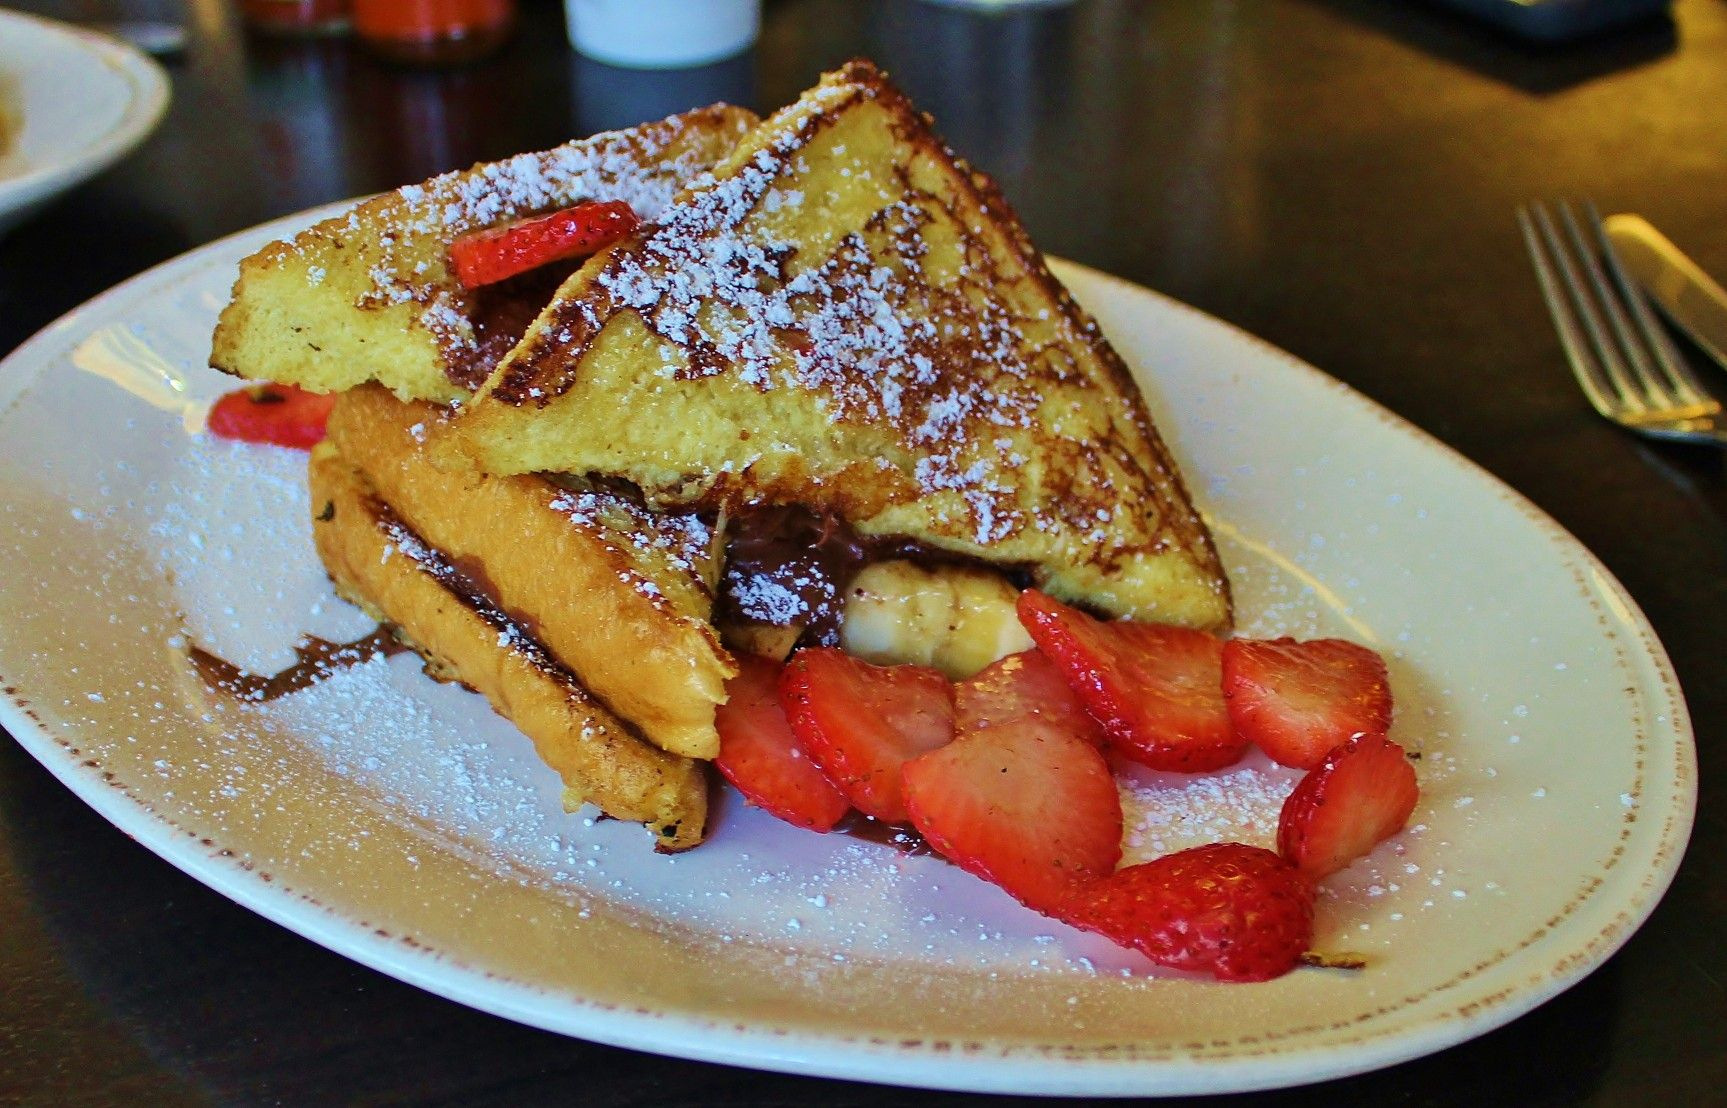 Nutella Stuffed French Toast thick slices of french toast